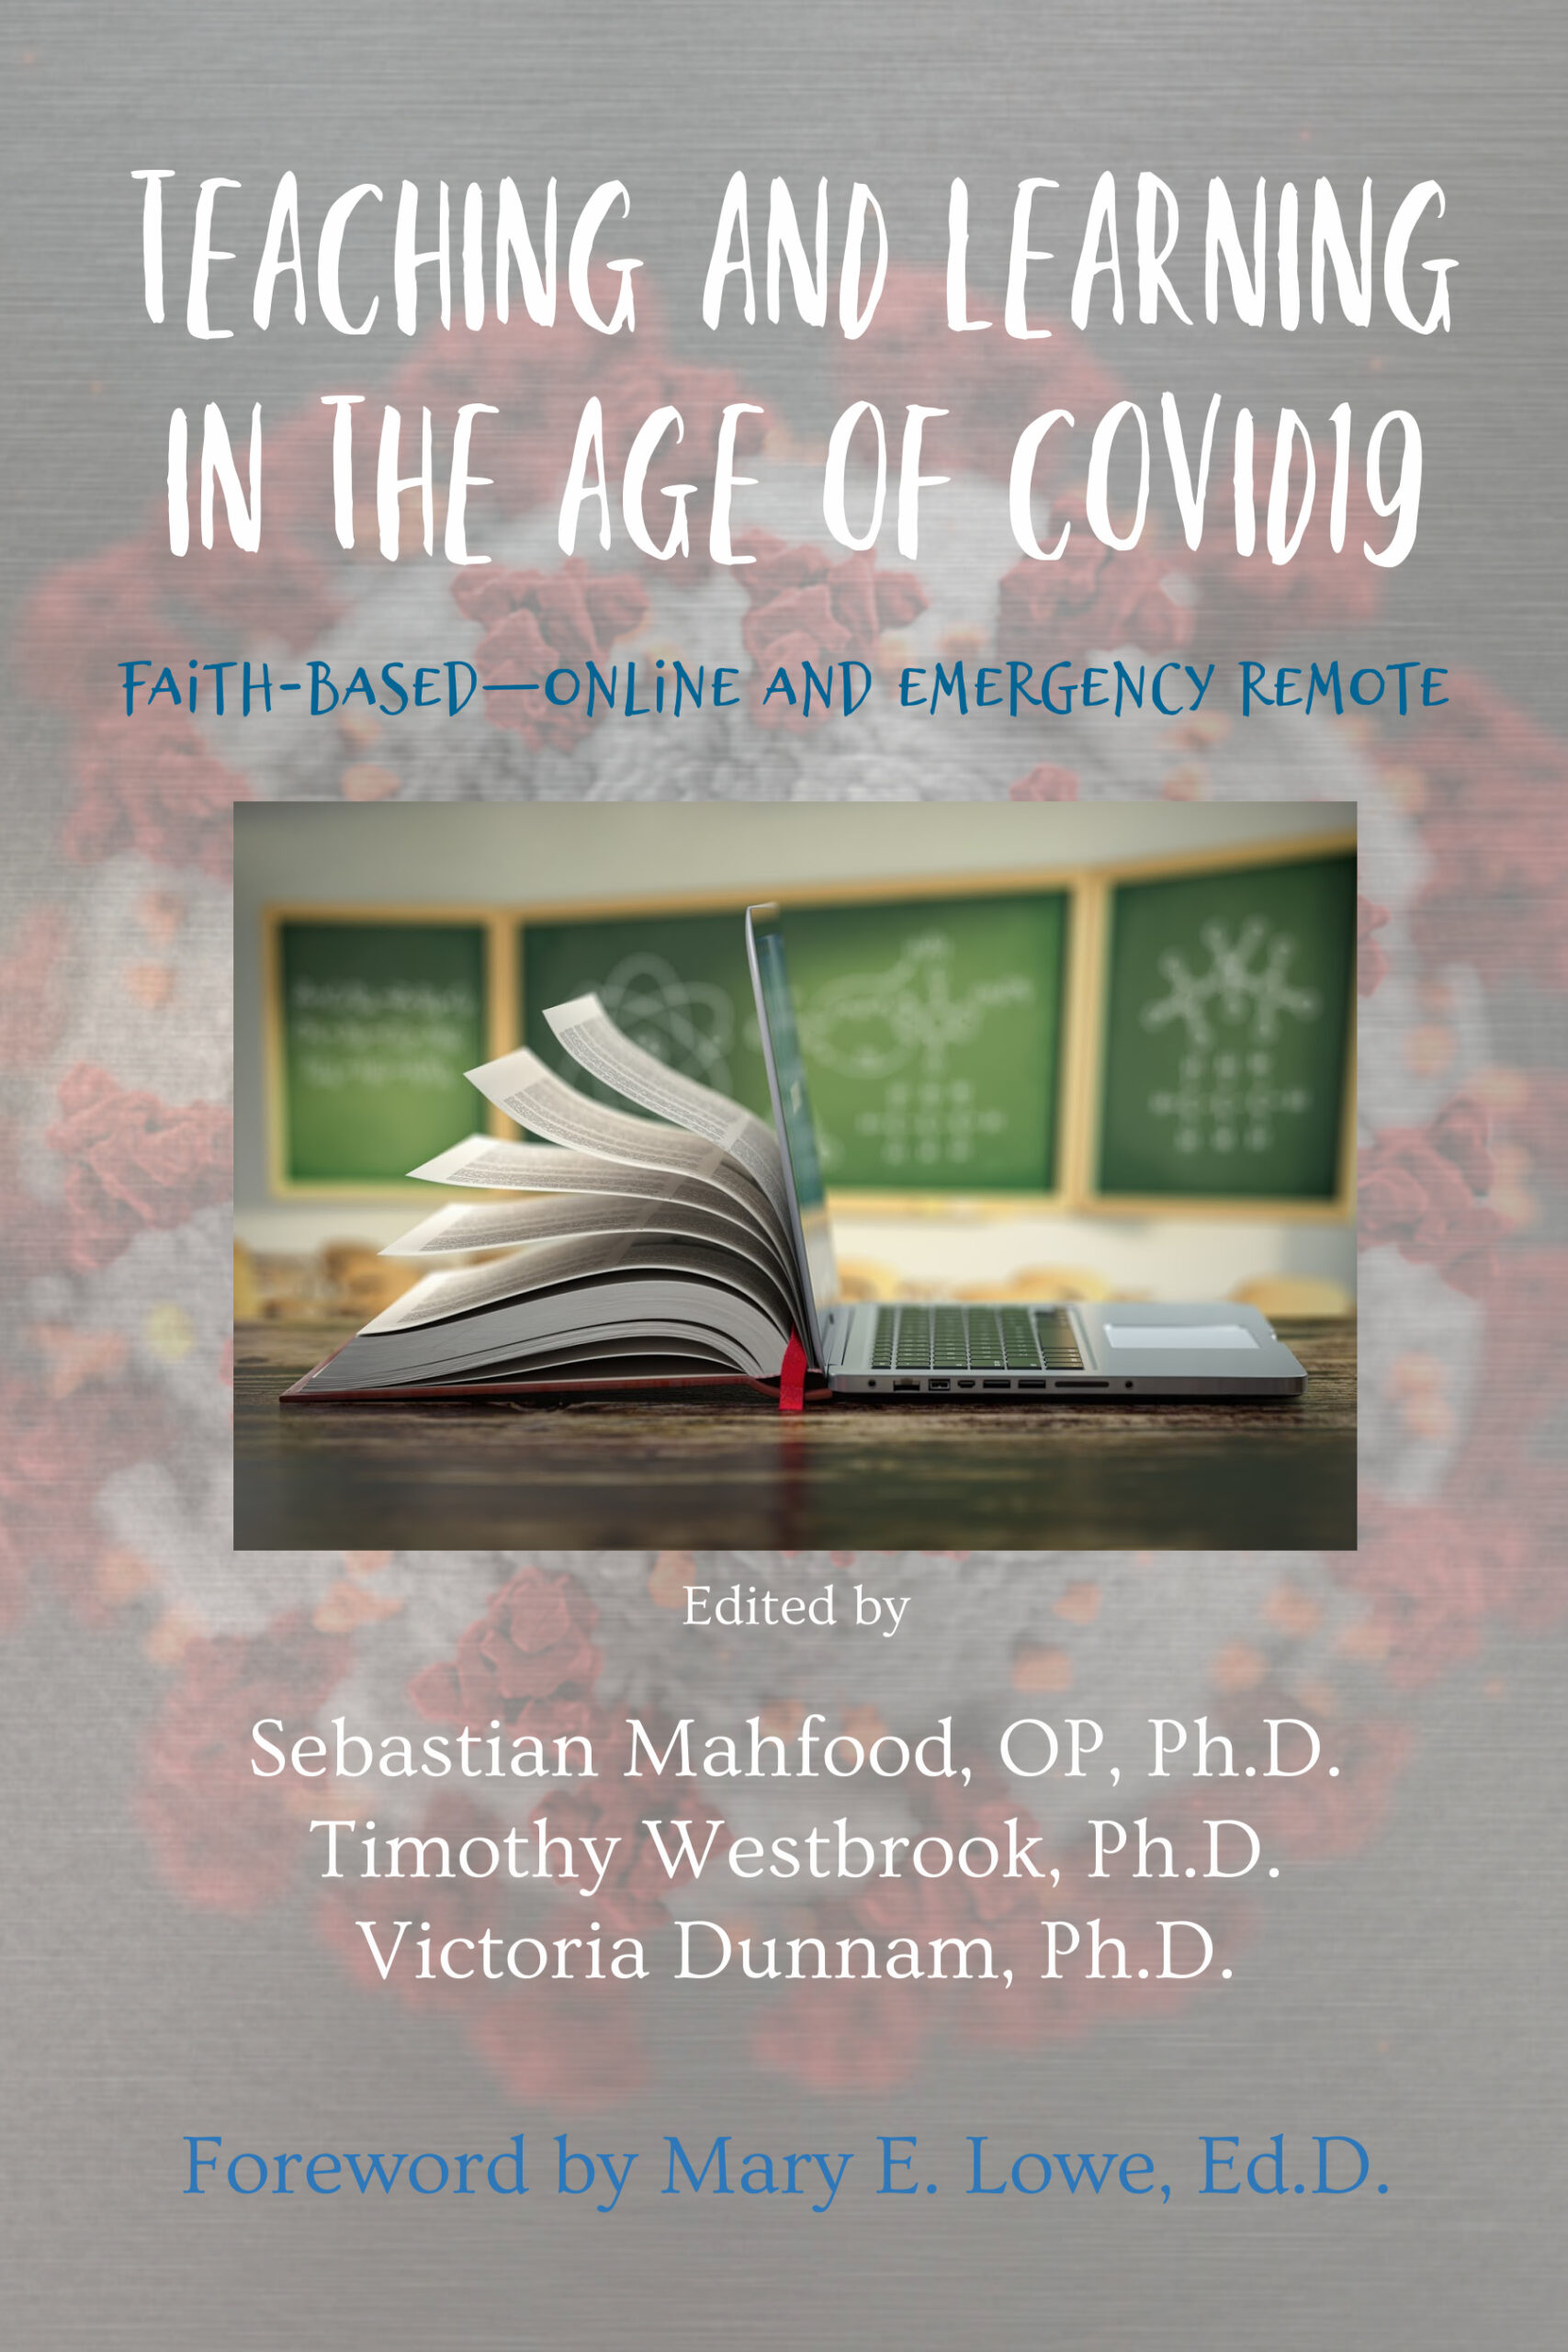 Teaching and Learning in the Age of COVID19